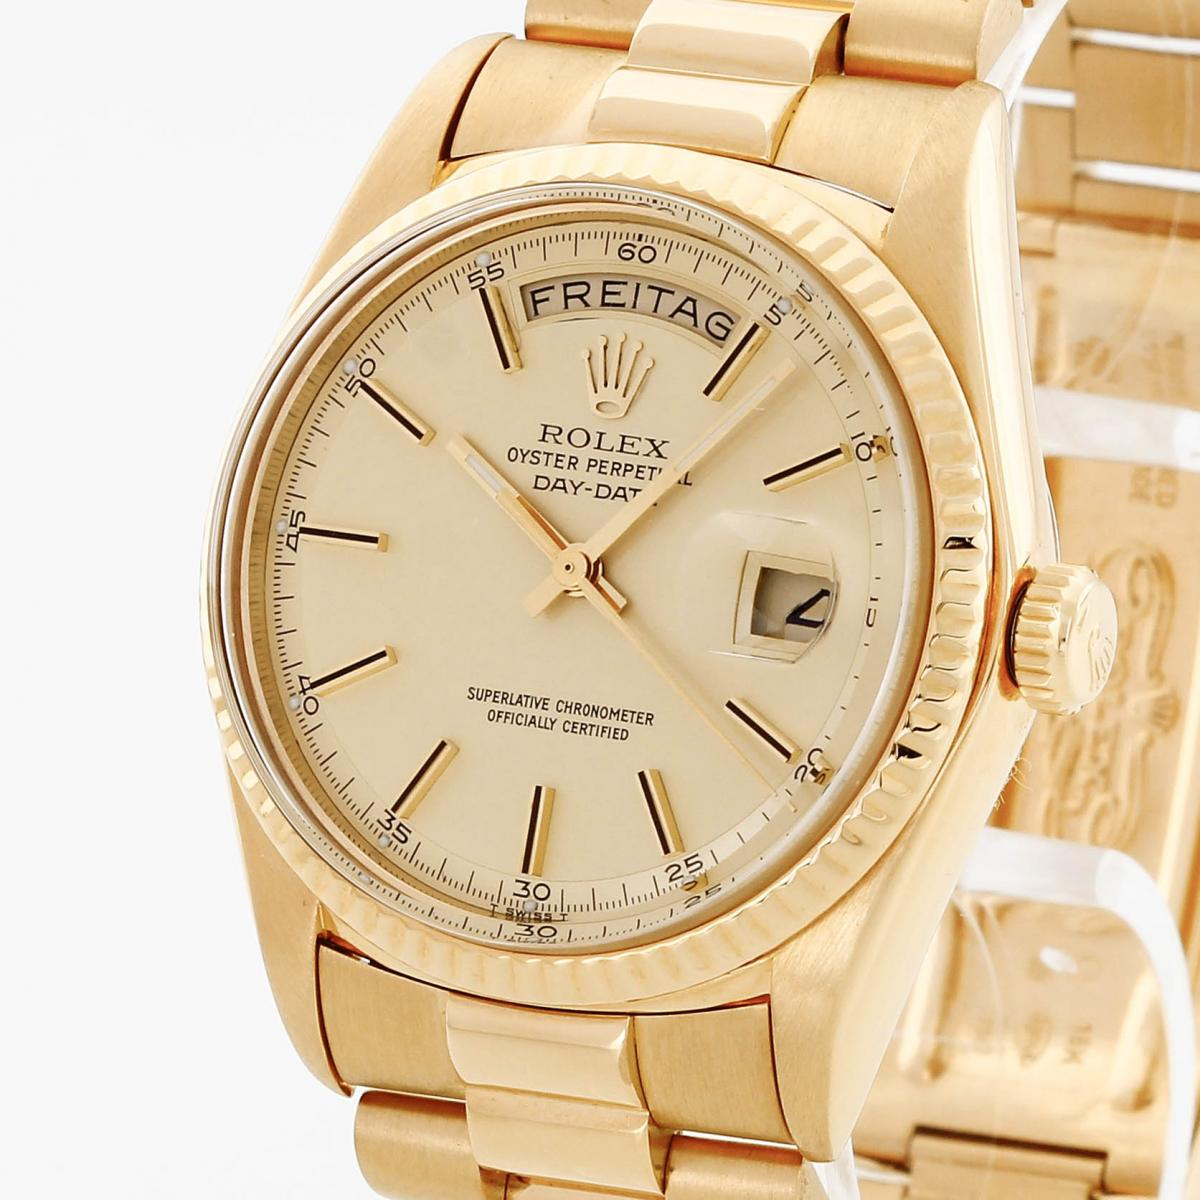 Rolex Oyster Perpetual Day-Date I Ref. 1803